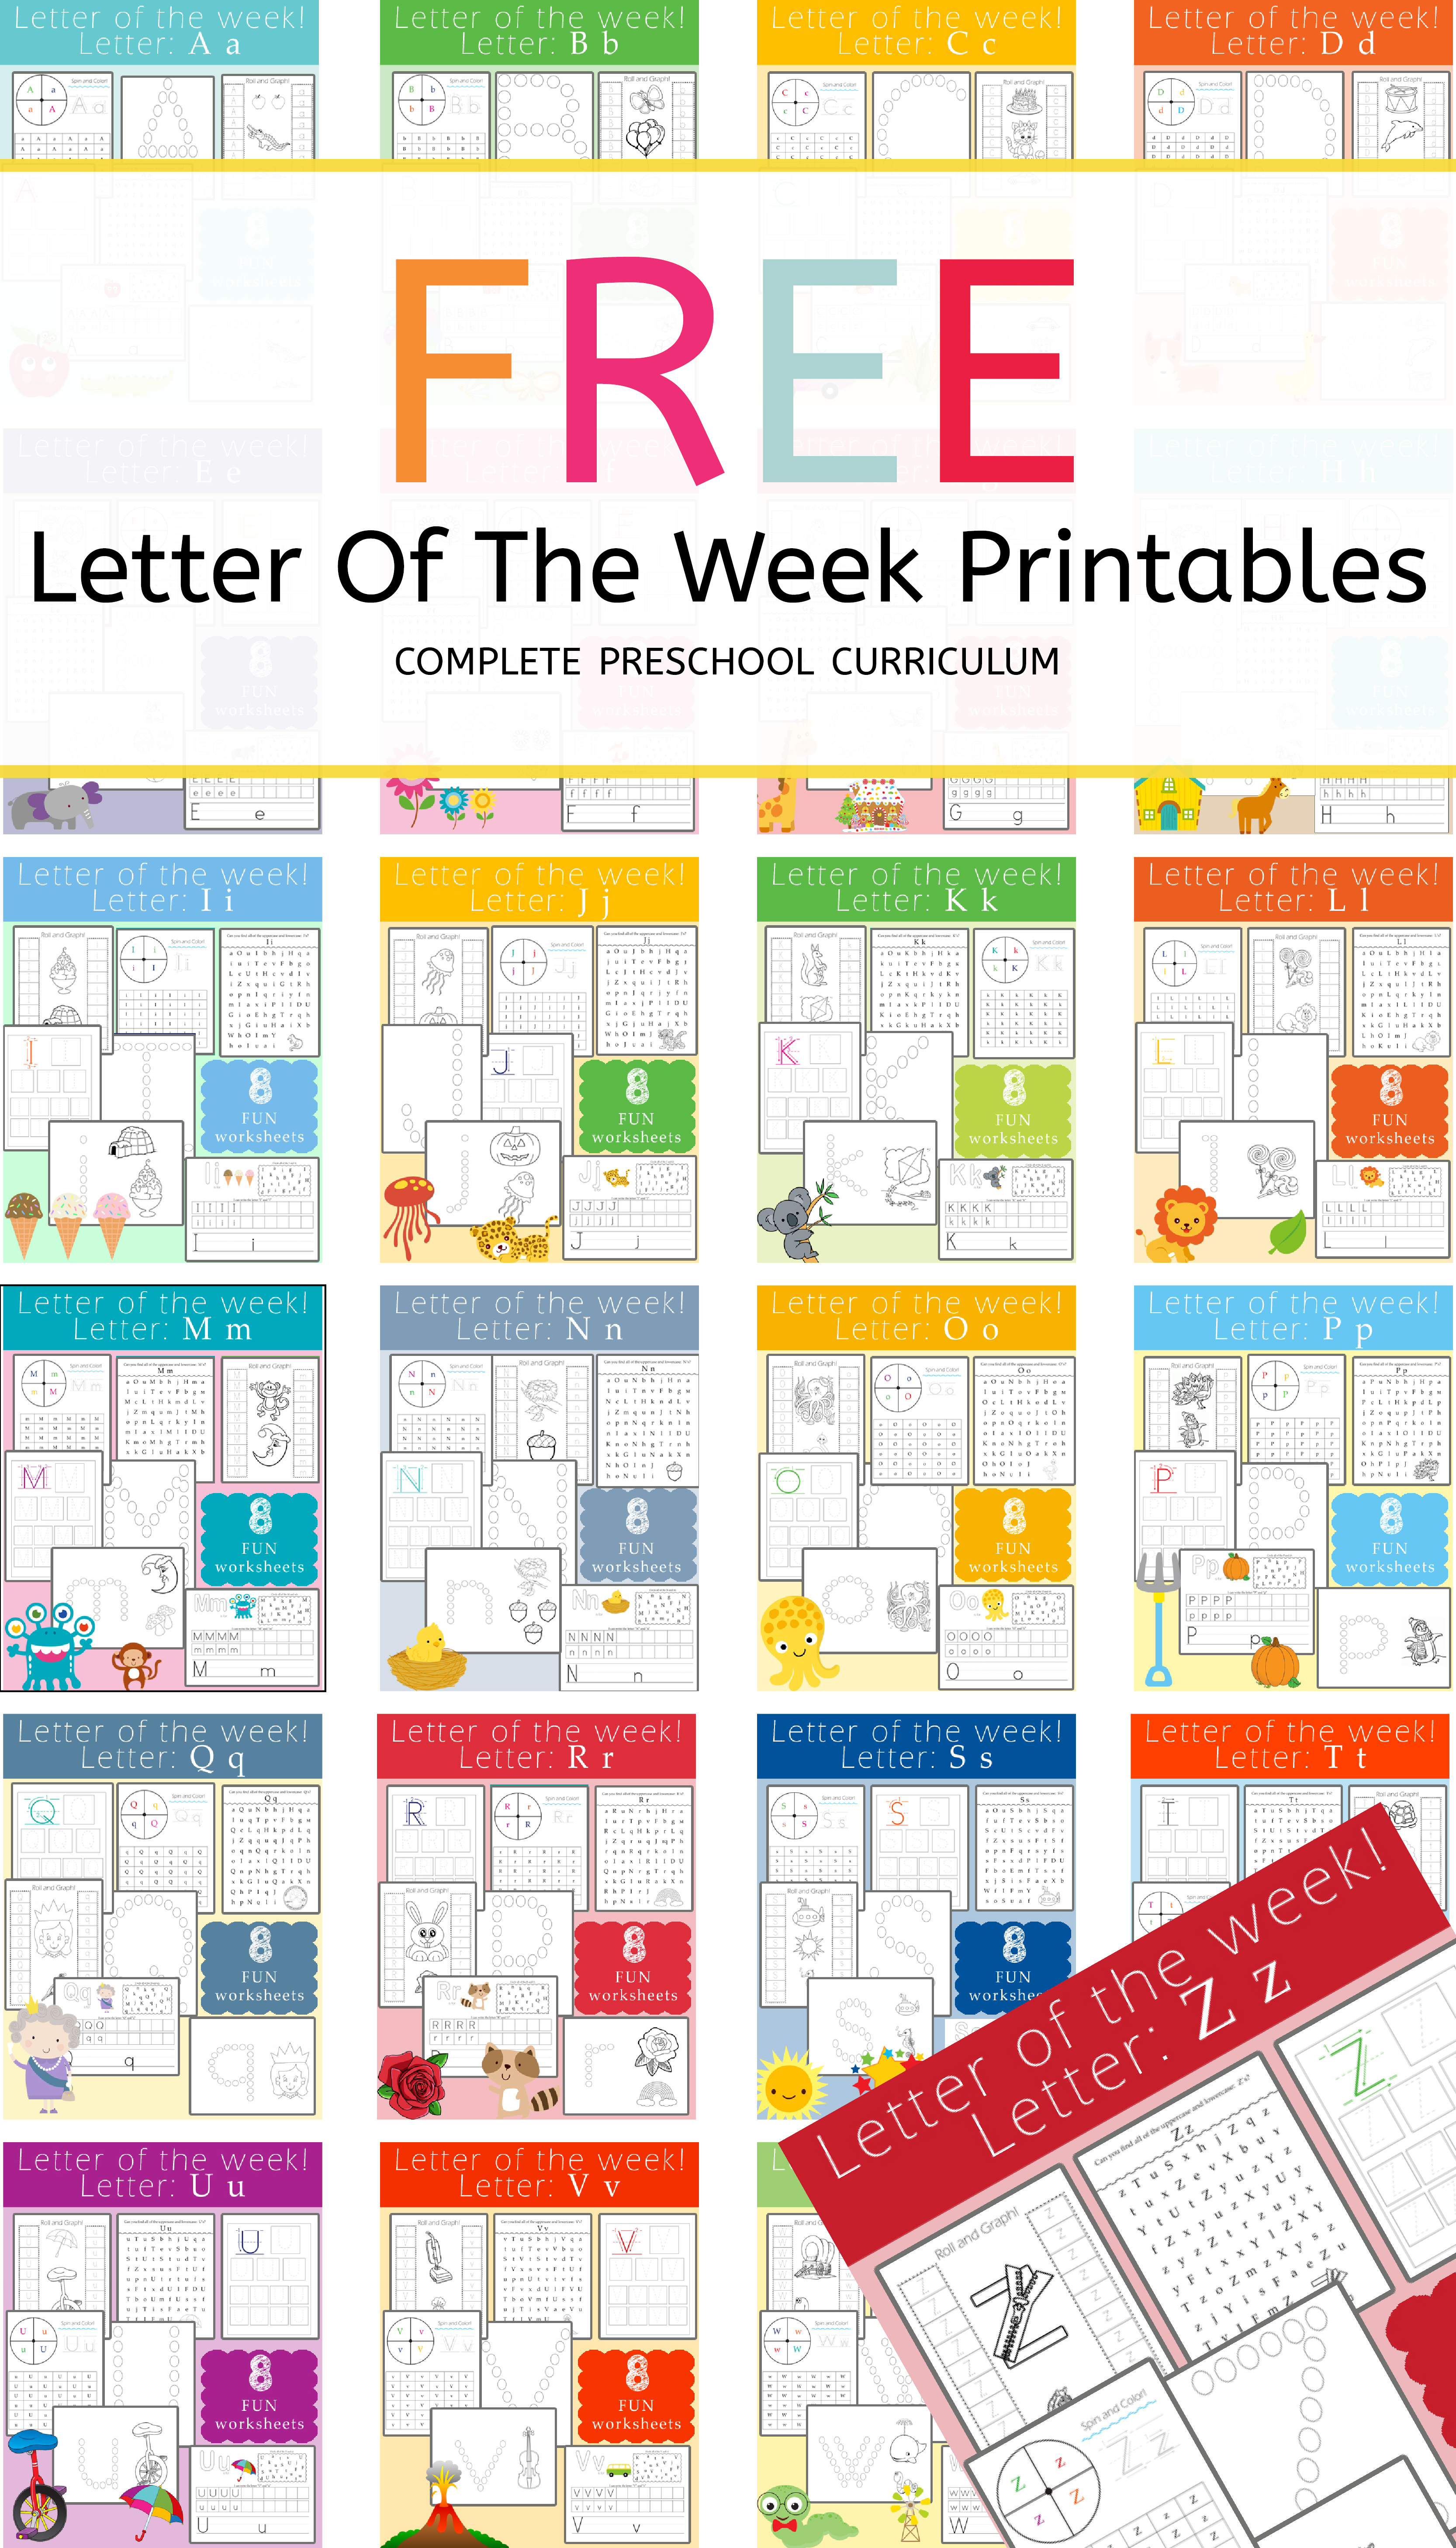 FREE Letter Of The Week Printables: Letter Z - Preschool ...